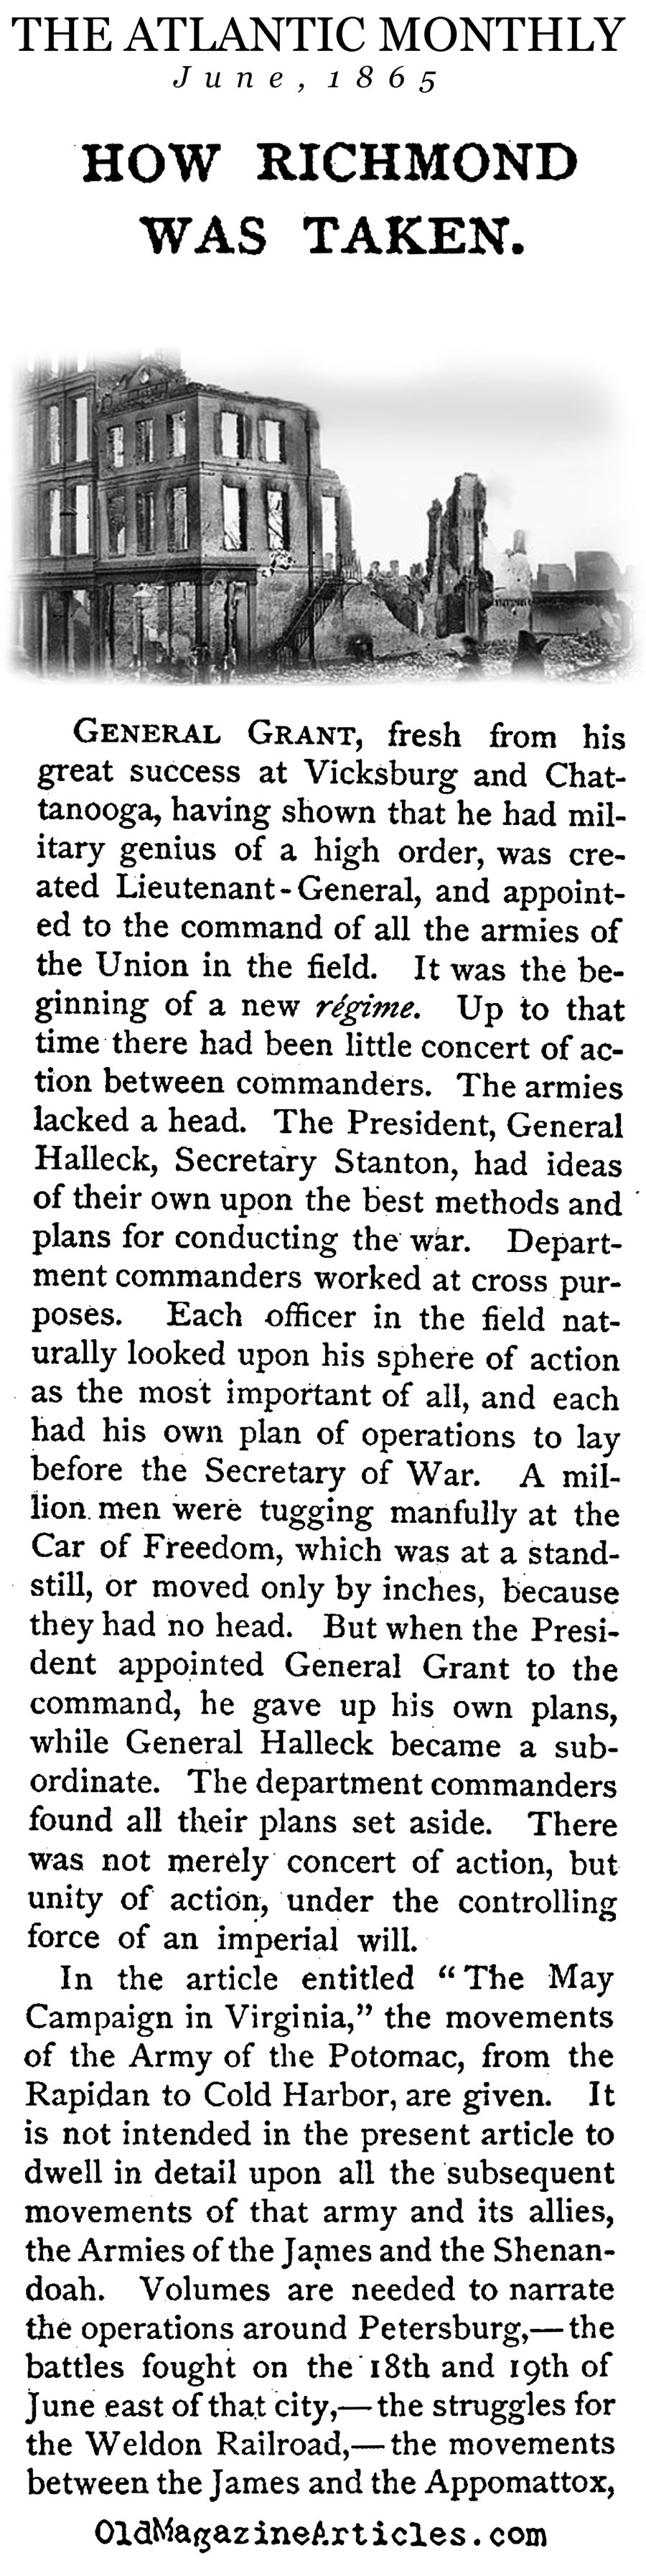 General Grant's March on Richmond (The Atlantic Monthly, 1865)